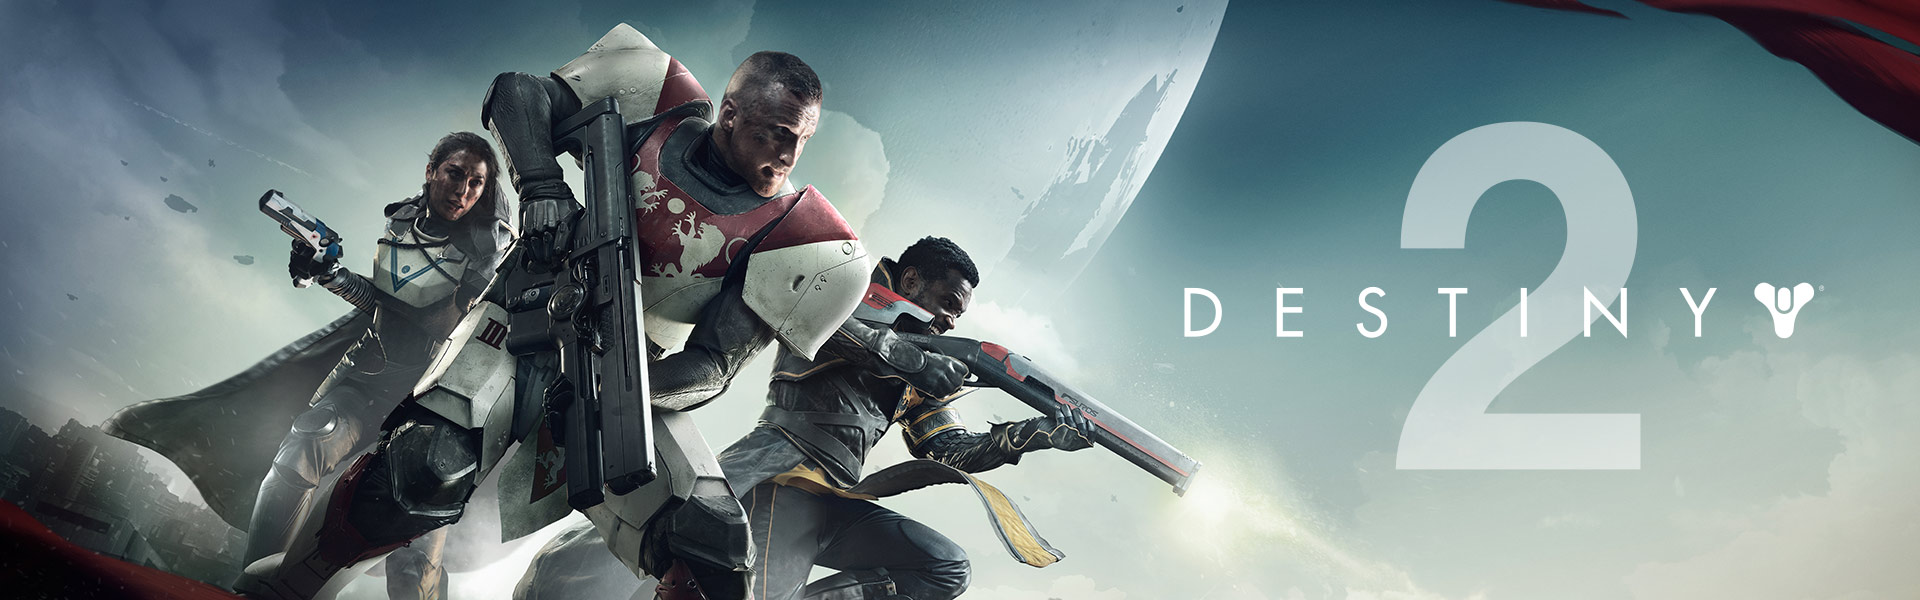 Destiny 2 Director to Deliver PAX West 2017 Keynote - #UD 2